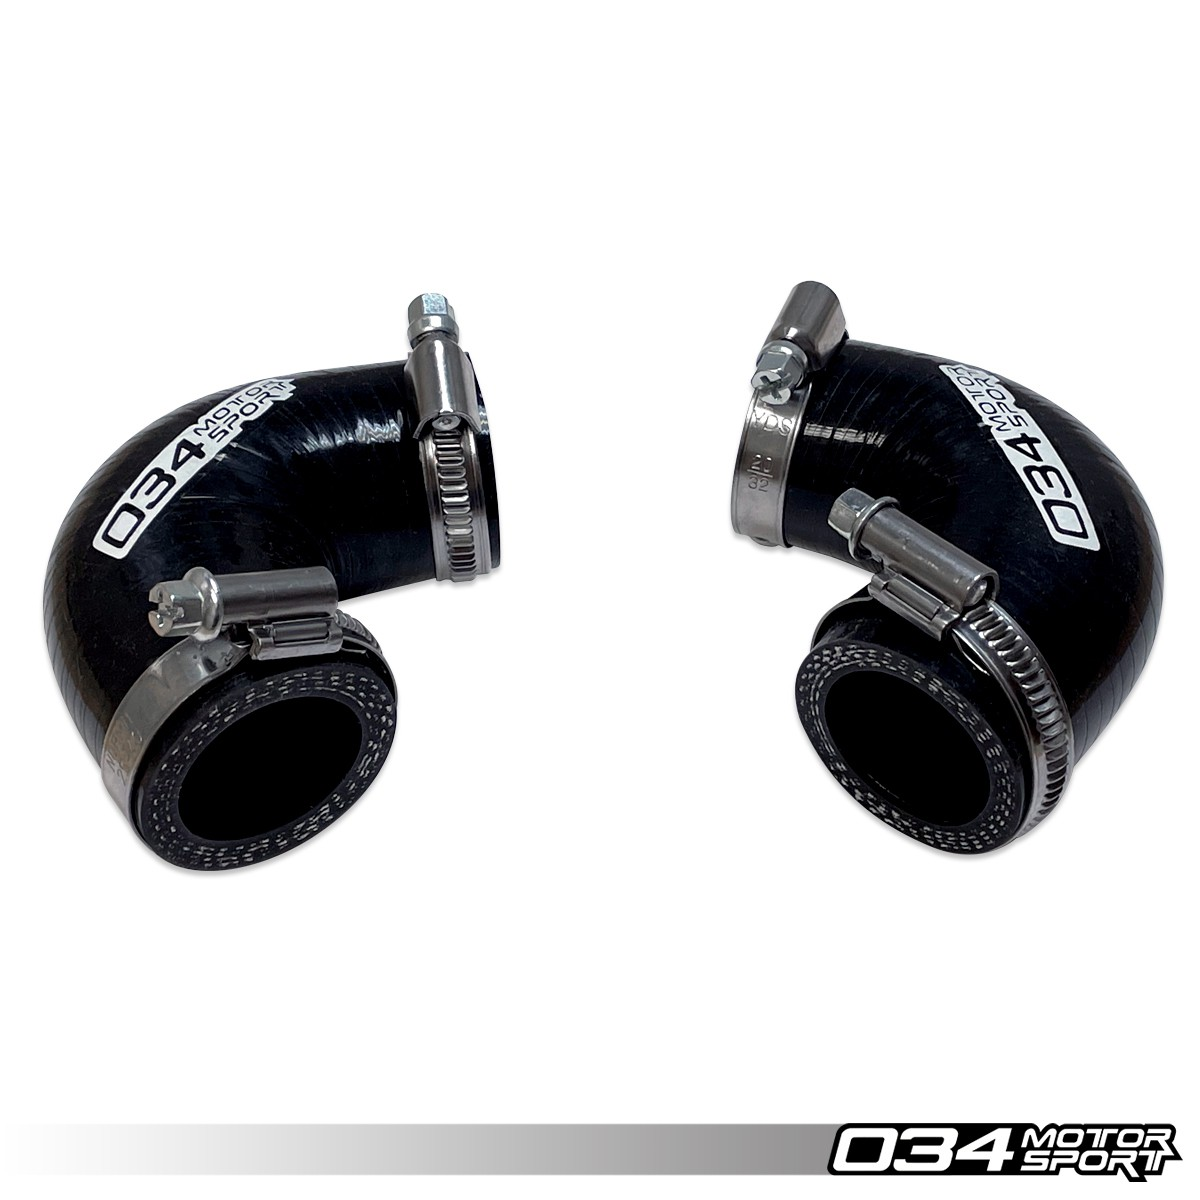 Bypass Valve Inlet Bipipe Hose Pair For APR Bipipe, Silicone, 2.7T 034-108-3031